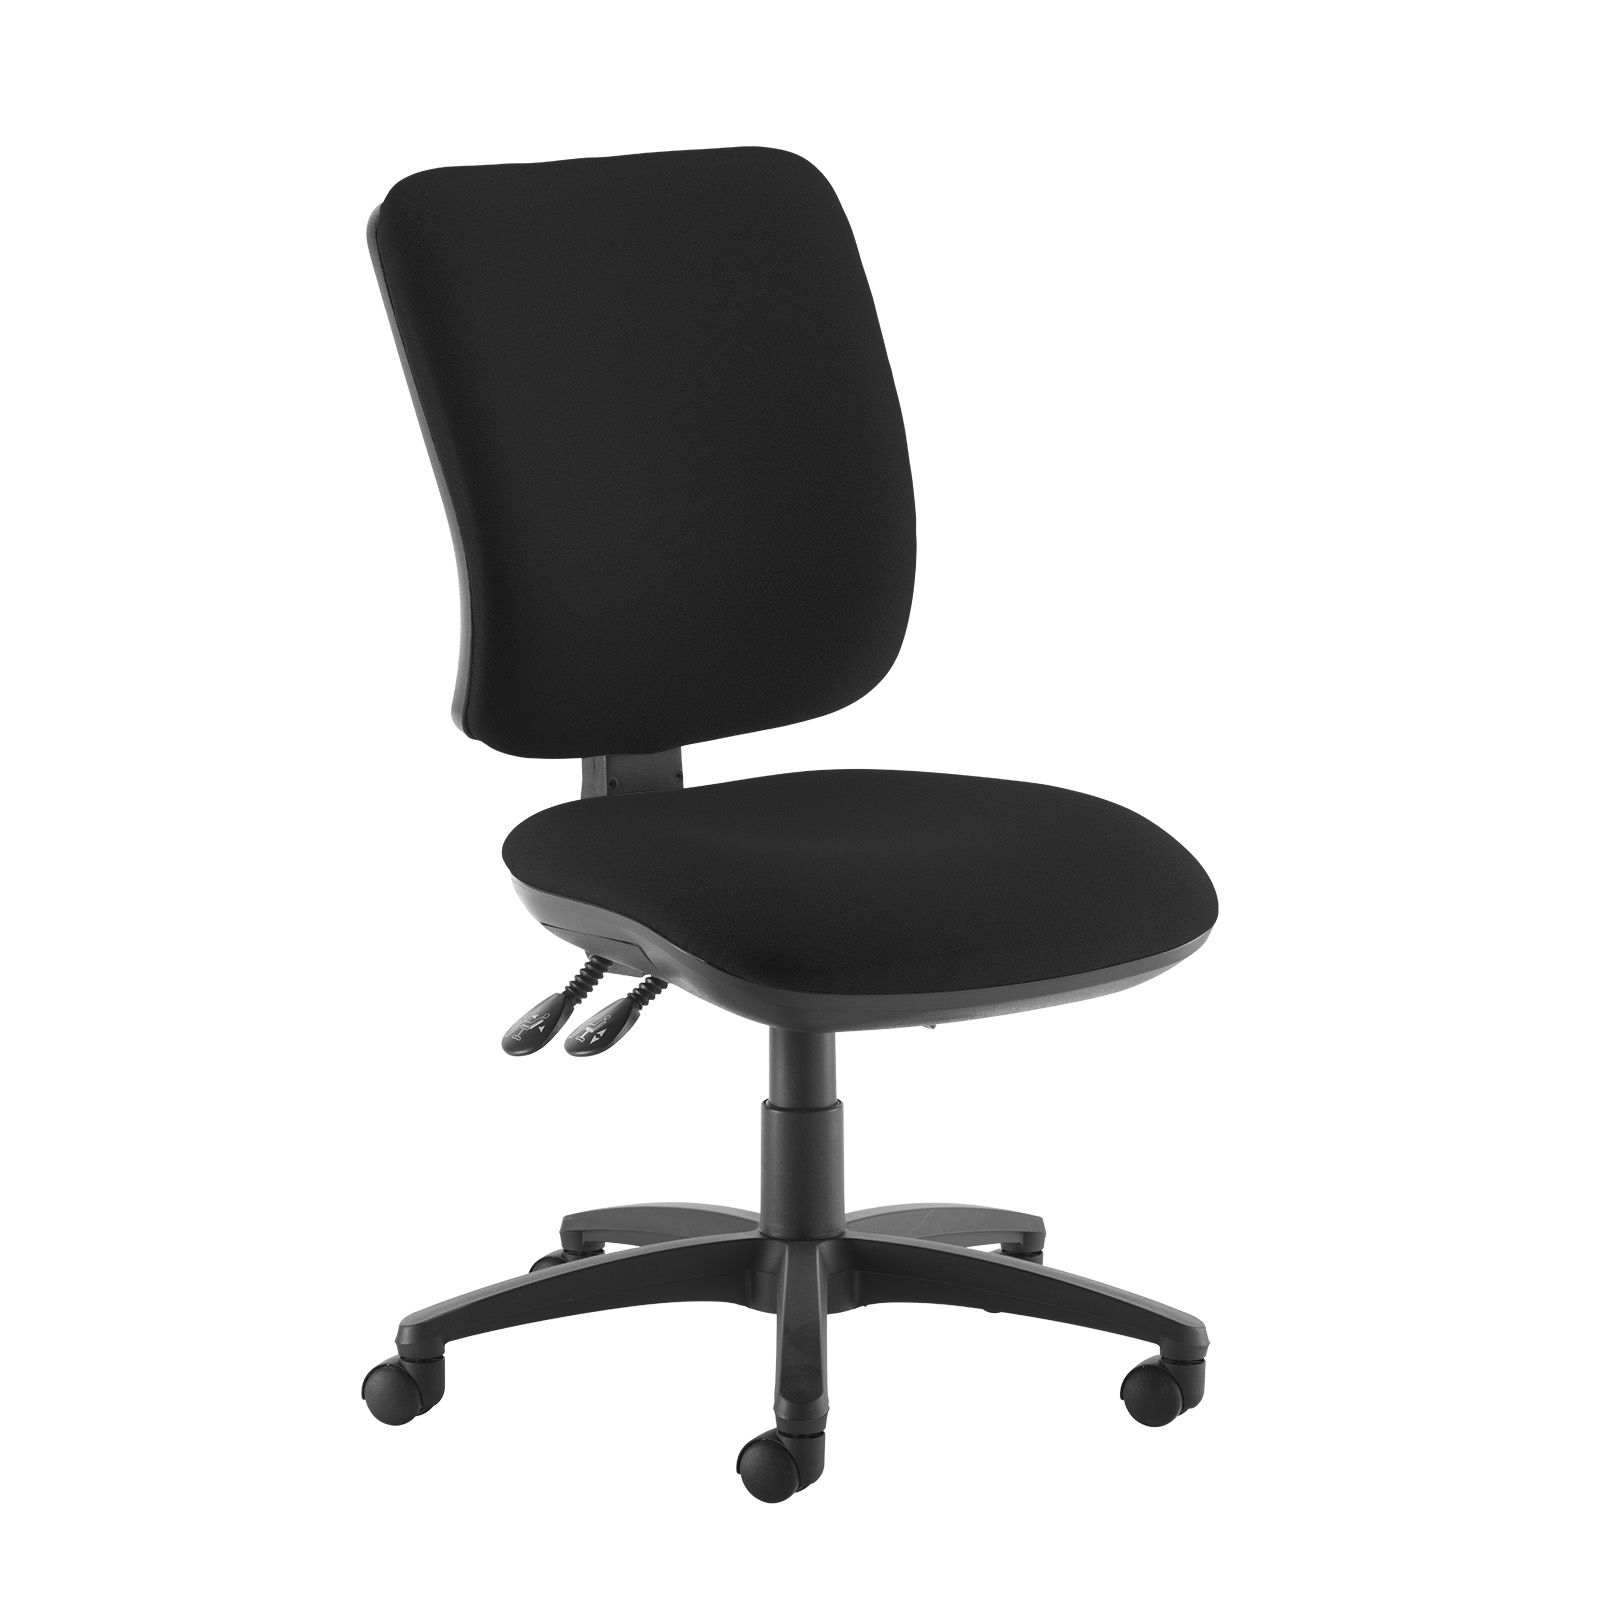 Desk Chairs Senza high back operator chair with no arms - black